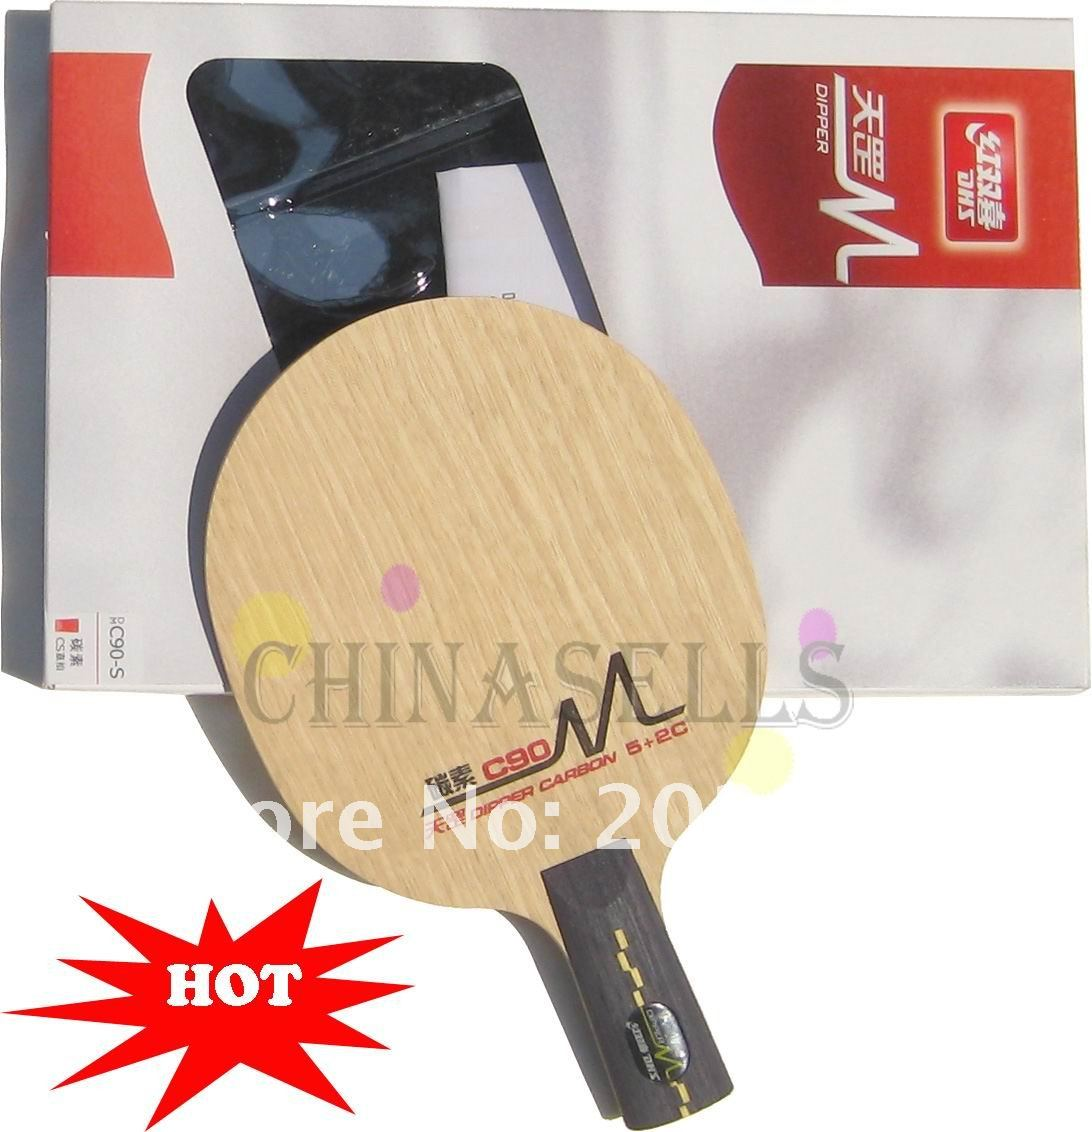 1pcs free ship Genuine table tennis blade DHS DIPPER CARBON C90 7ply table tennis racquet(China (Mainland))